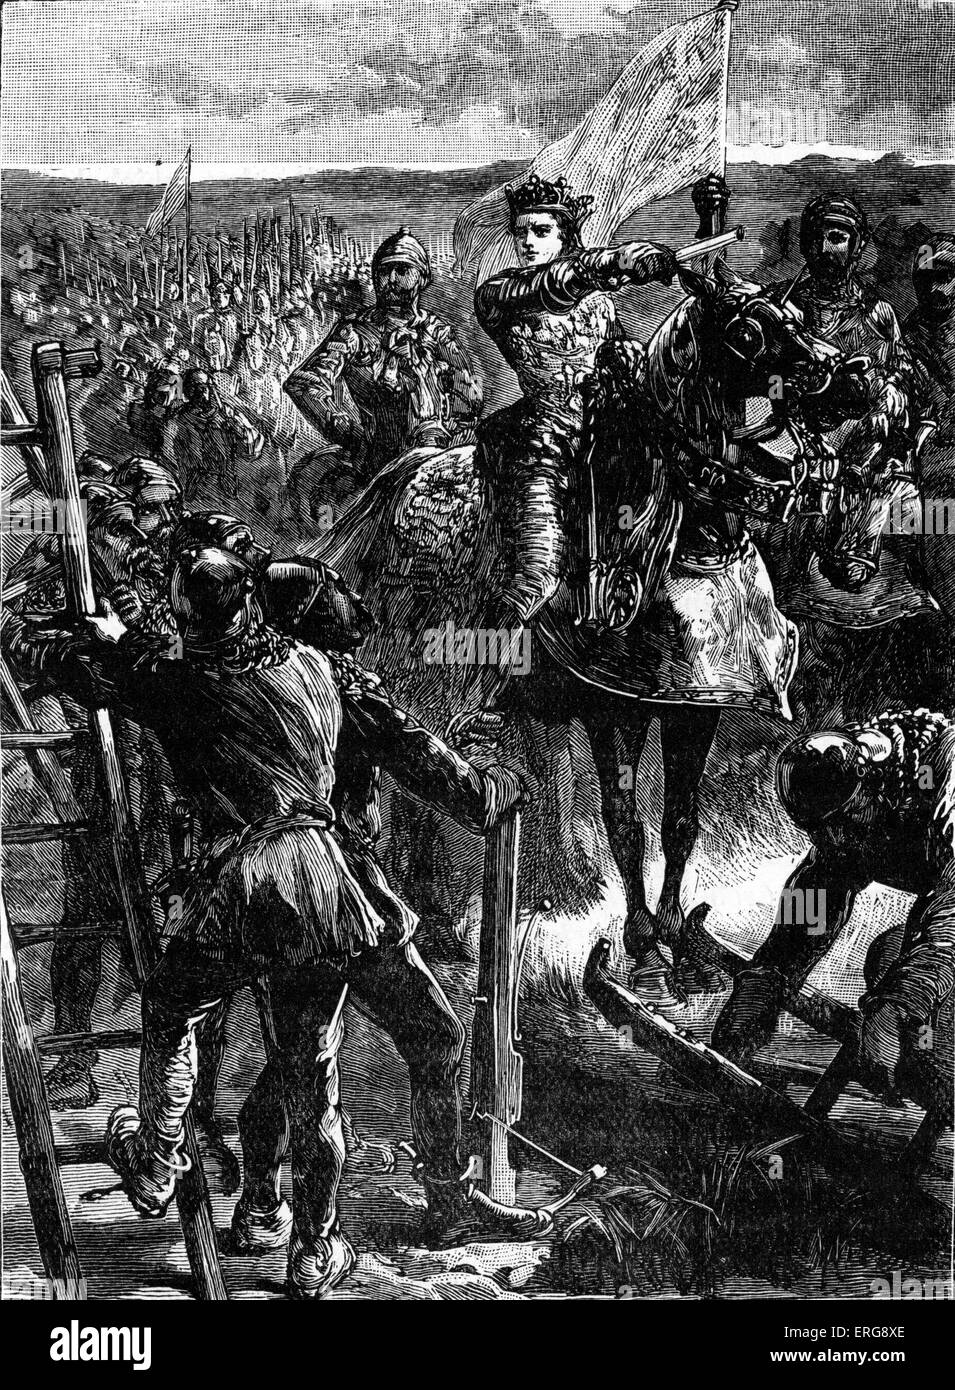 Siege of Harfleur - English before the siege. 18 August -  22 September  1415, during Hundred Years' War. Under - Stock Image